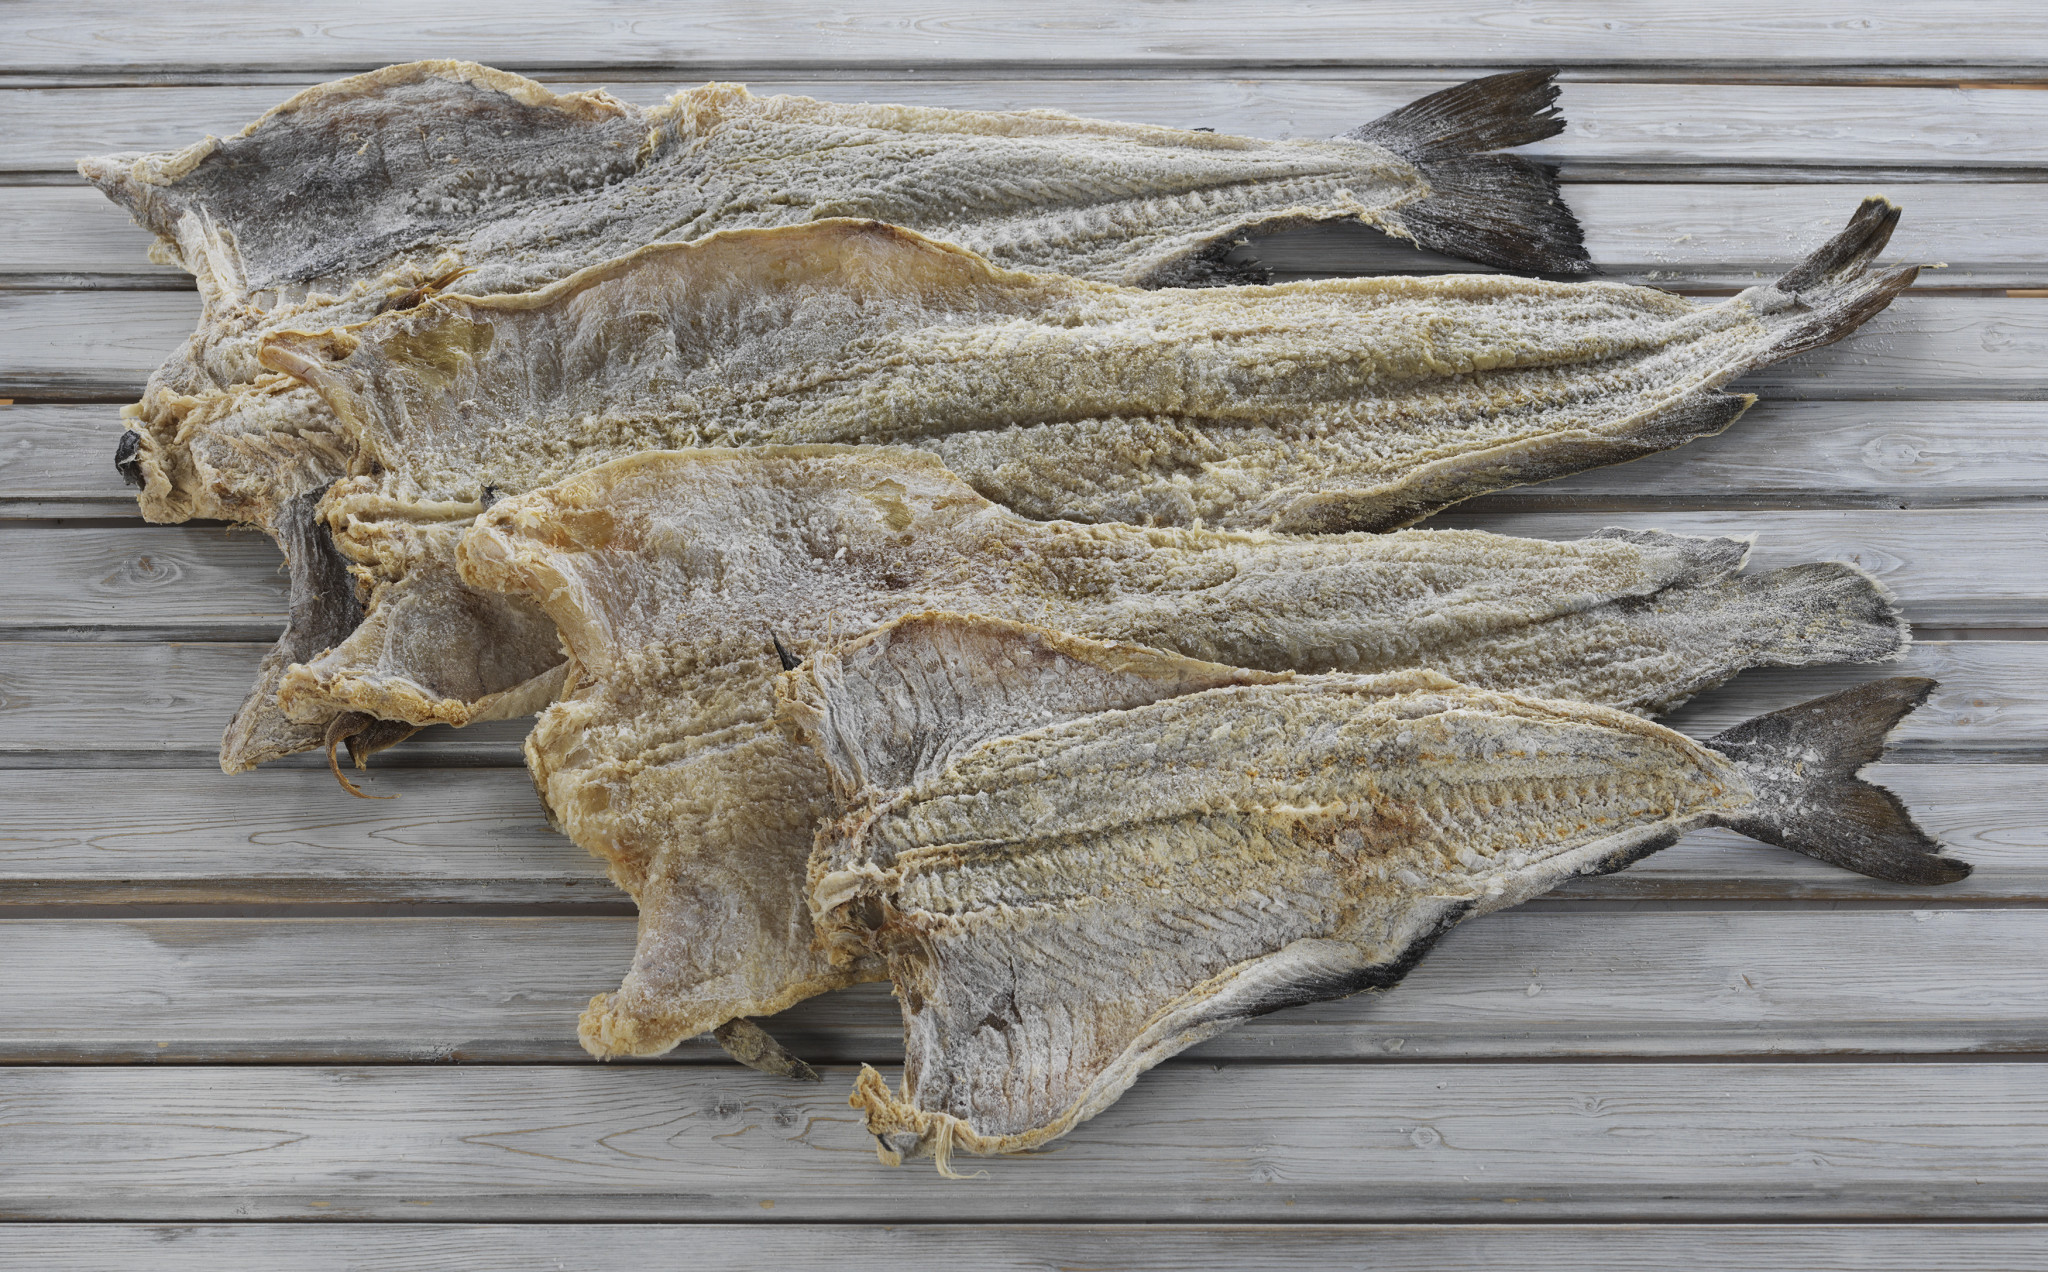 Norway has Record Cod Exports This Quarter, Driven by Strong Demand for Clipfish, Saltfish